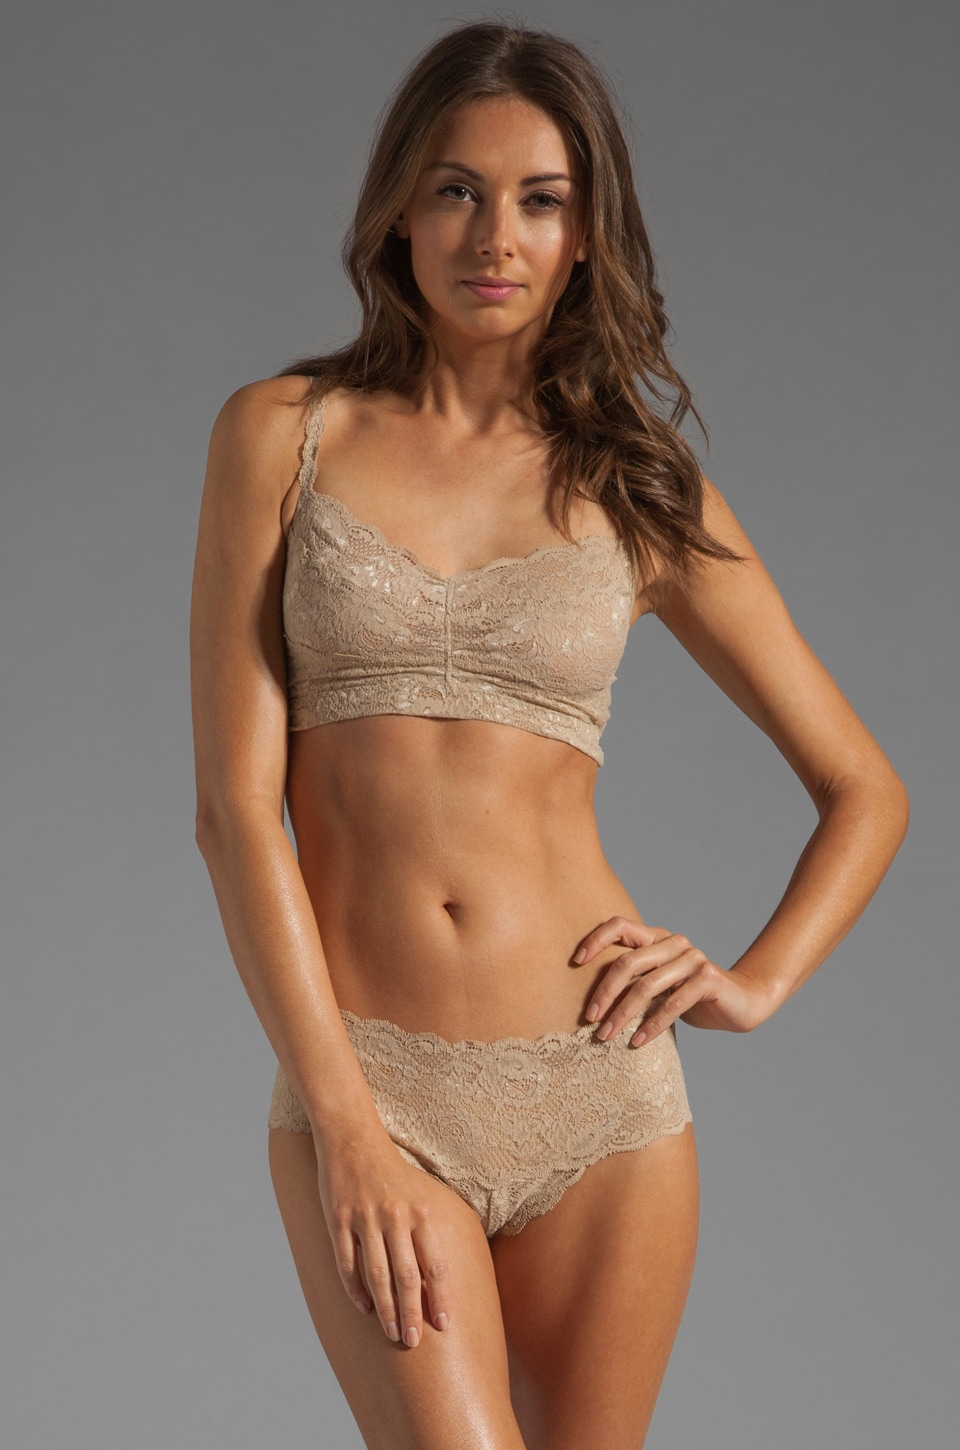 Cosabella Never Say Never Sweetie Soft Bra in Warm Taupe